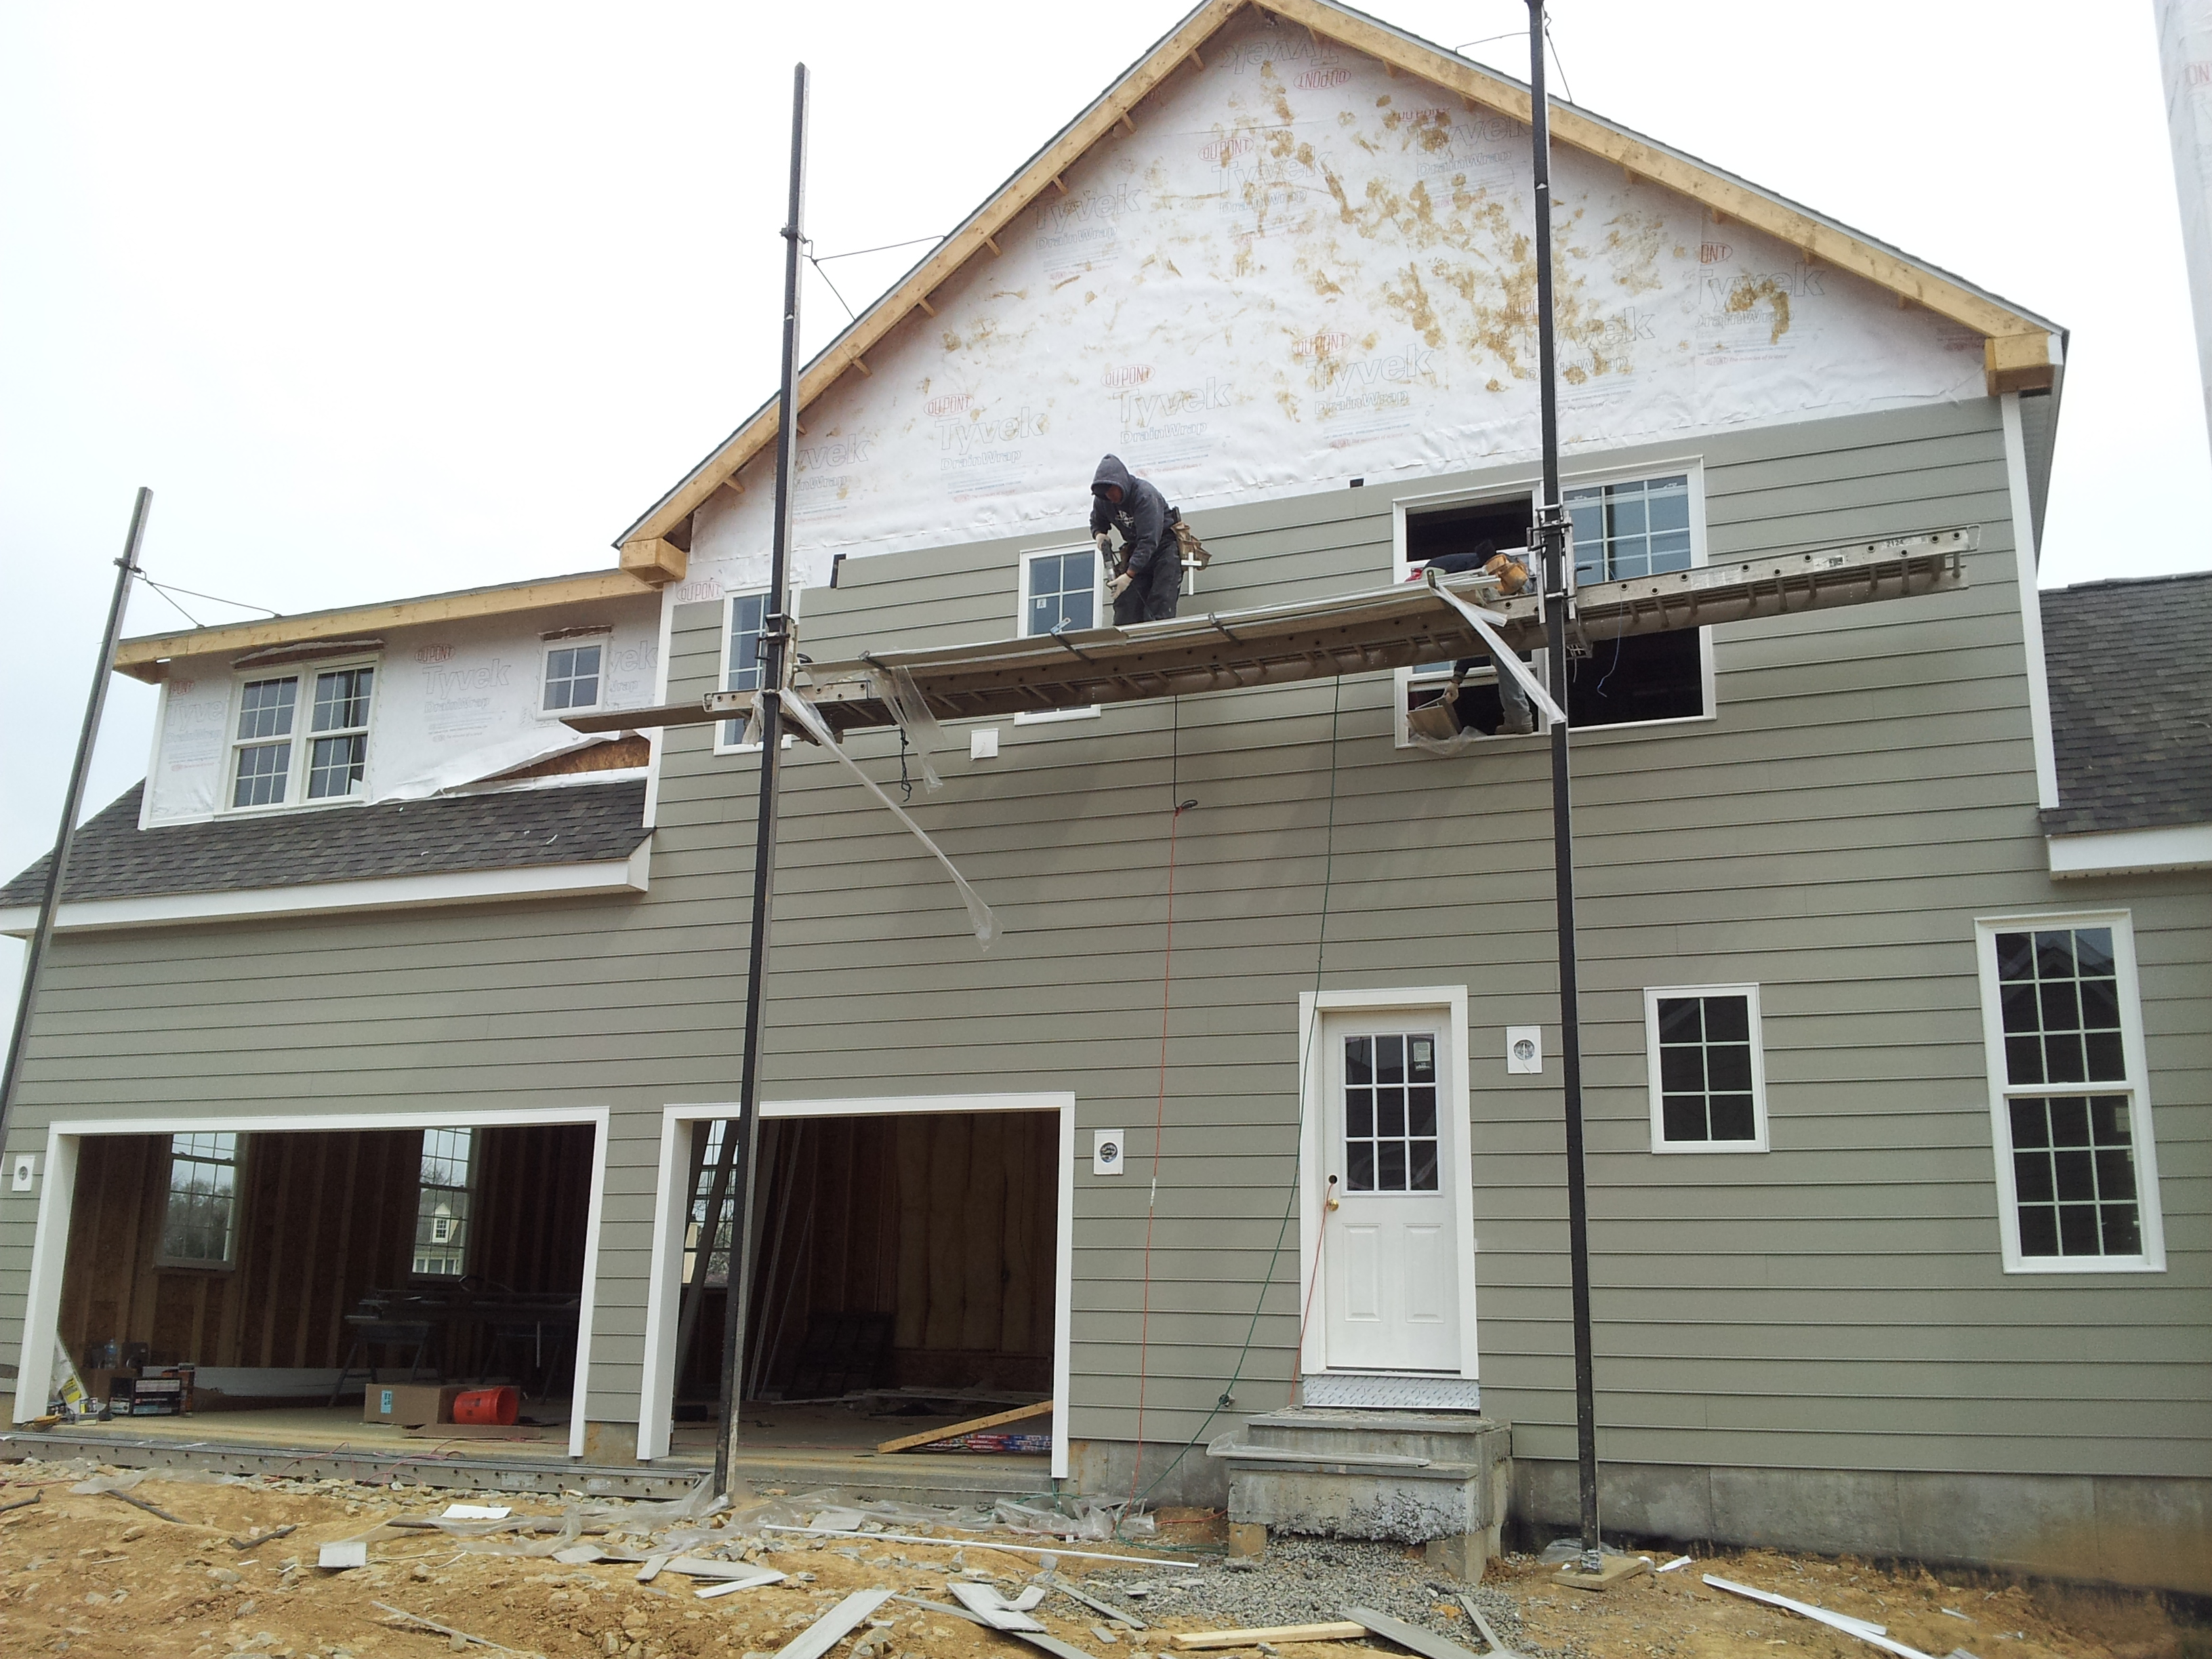 chic gray hardie plank siding matched with whte trim board and white door plus window for home exterior design ideas